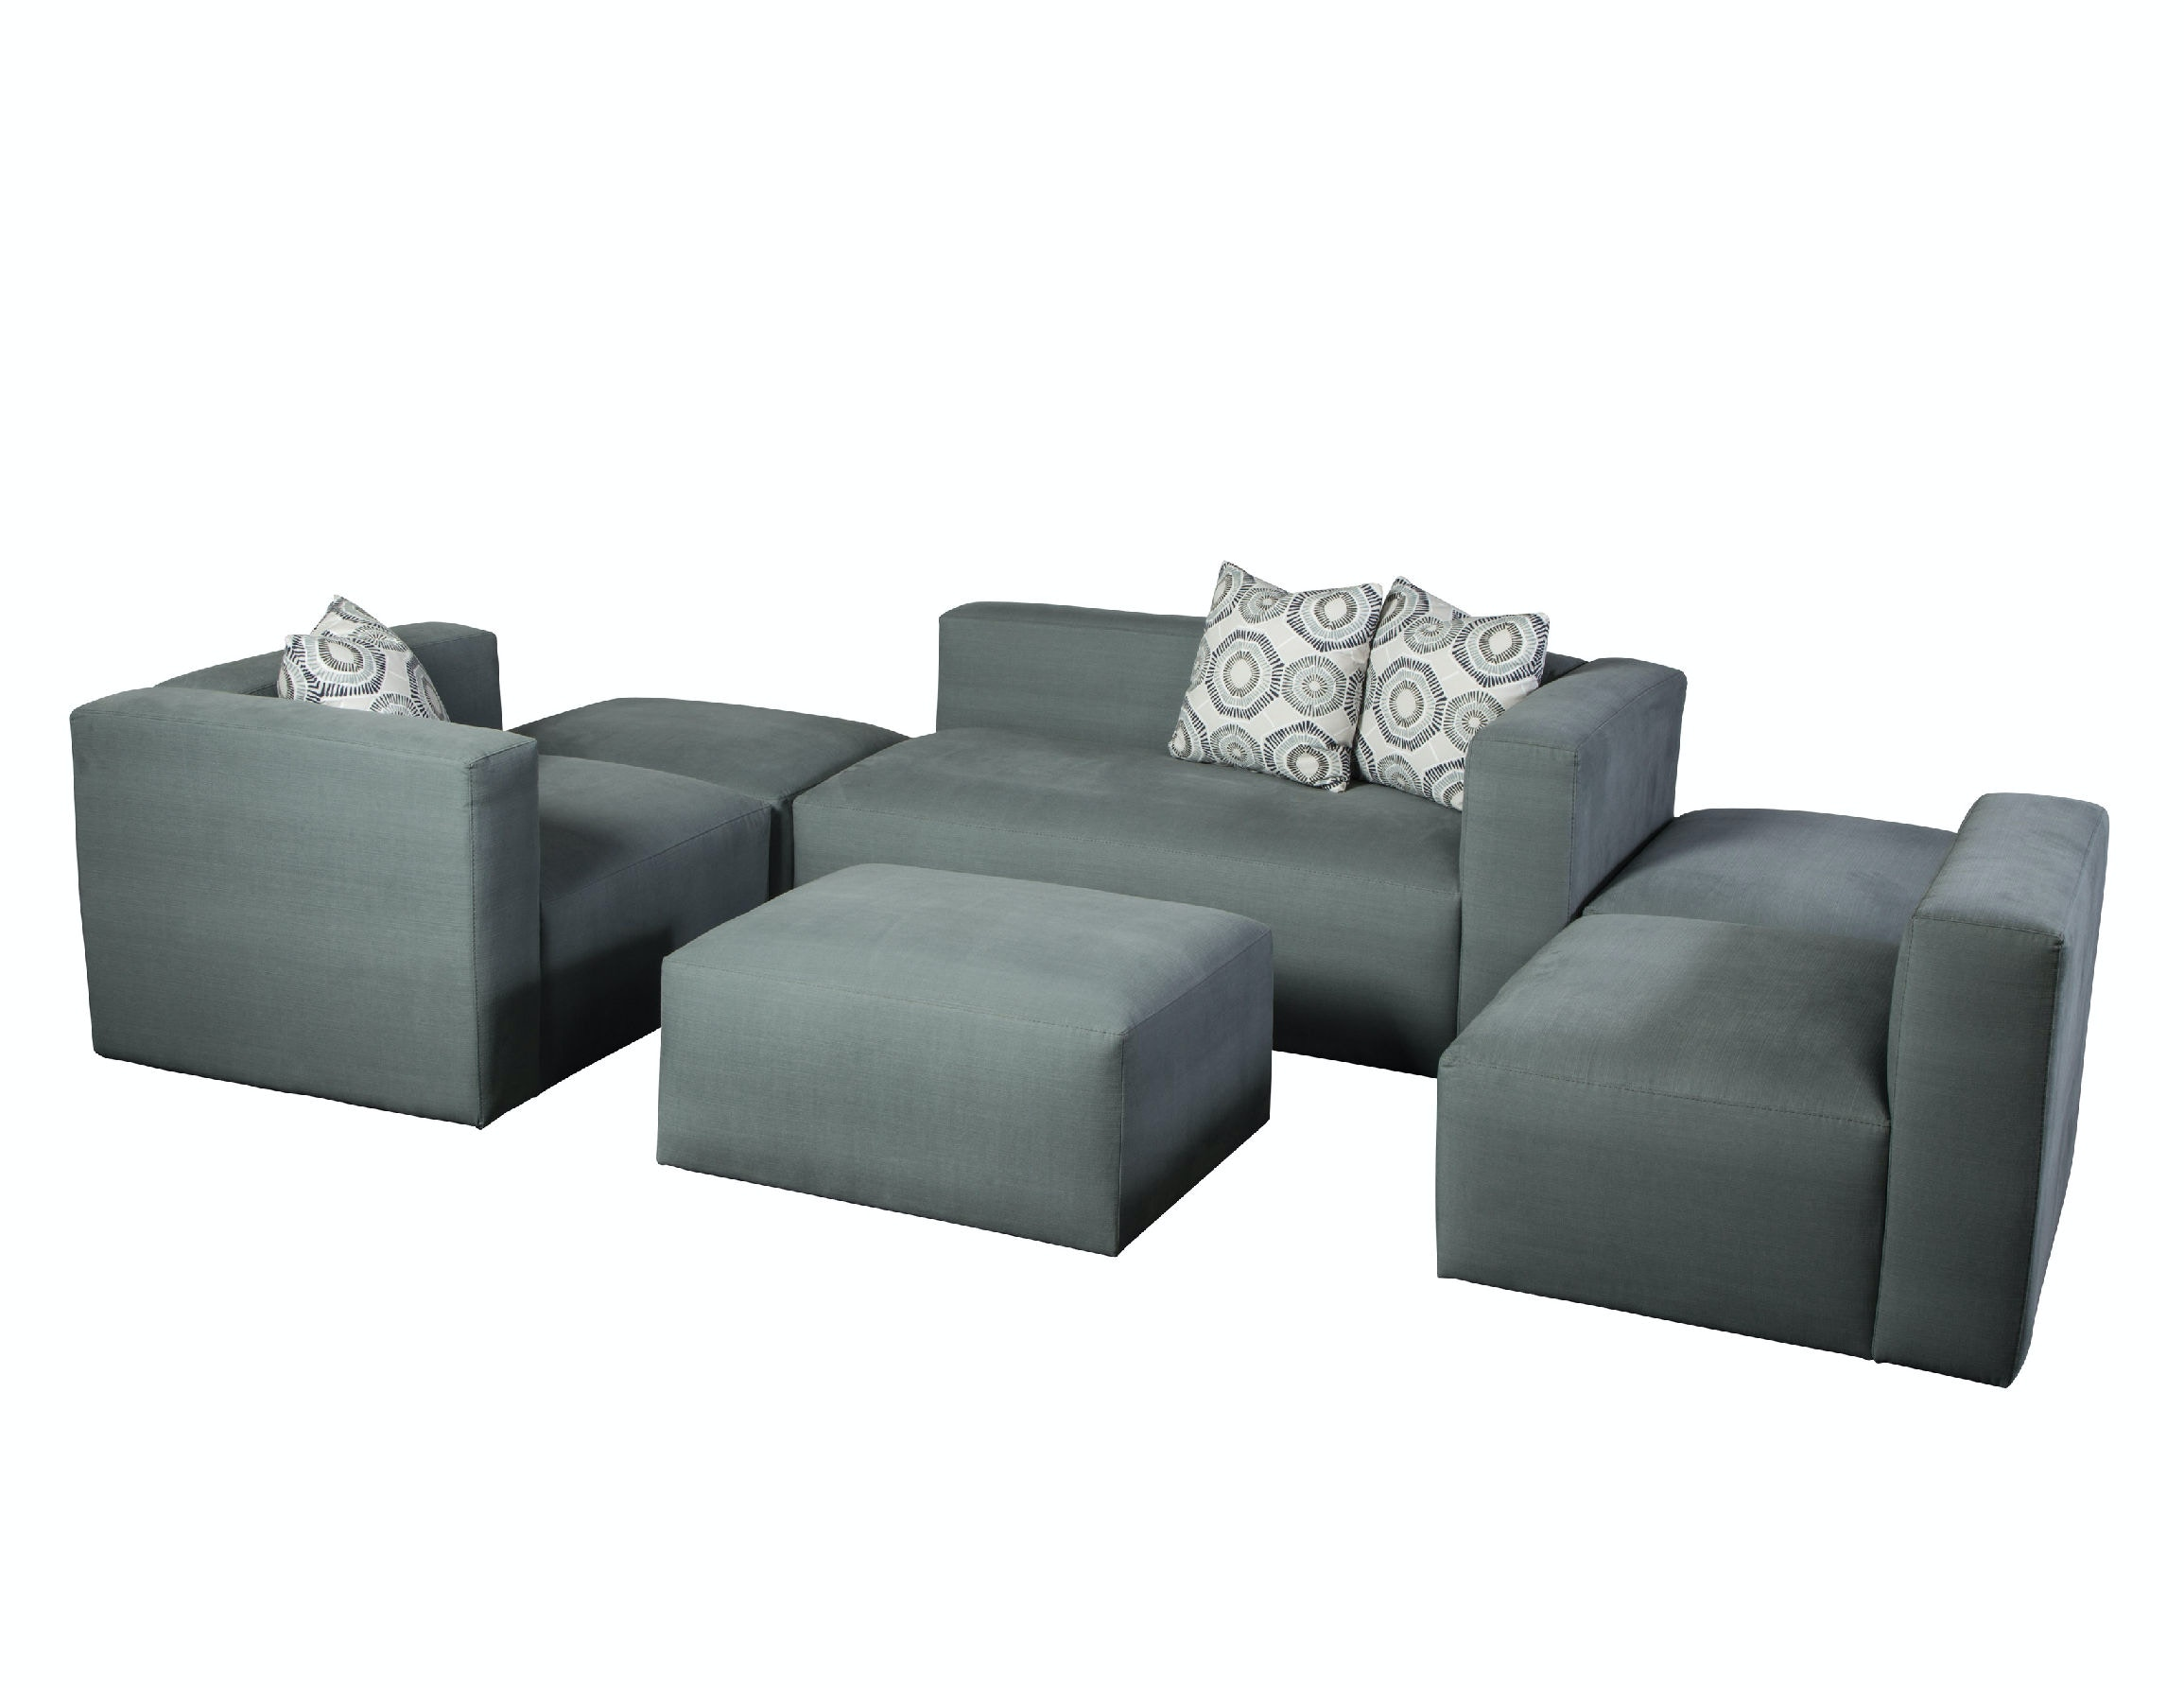 Jonathan Louis International Living Room Nico Sectional 253 Sectional At Klopfenstein  Home Rooms